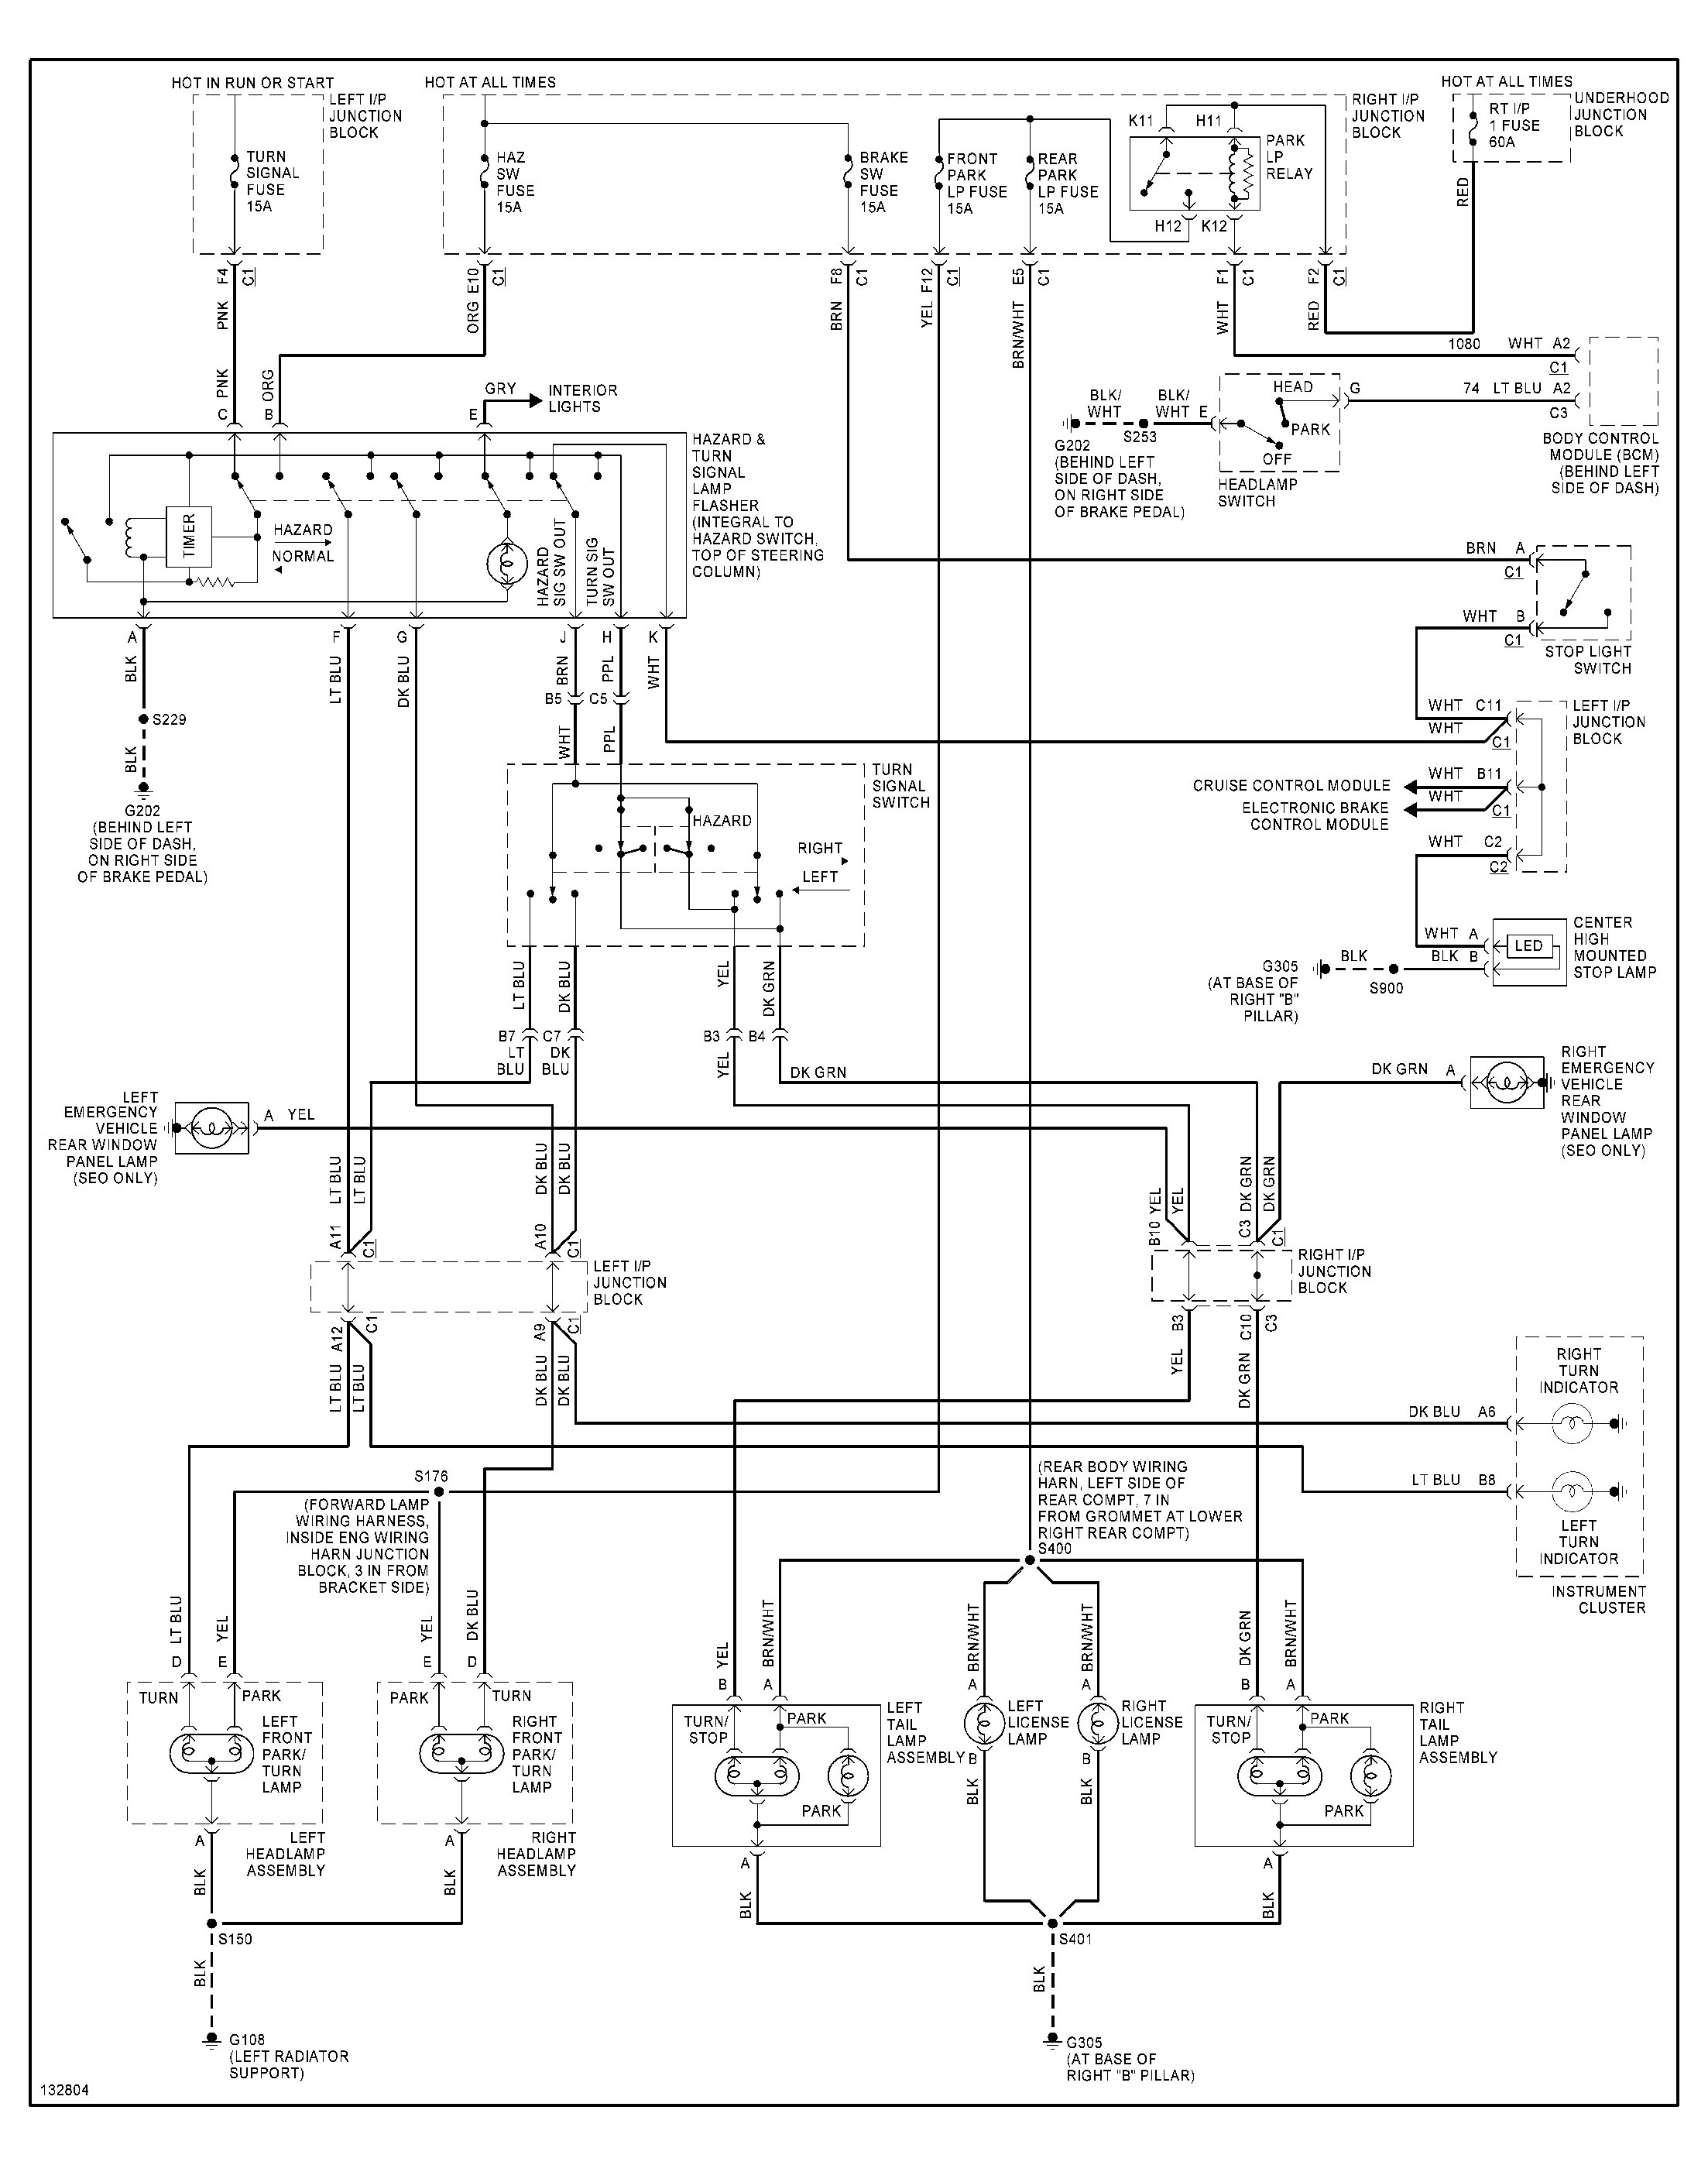 [DIAGRAM] Honda Tail Light Wiring Diagram 1995 FULL